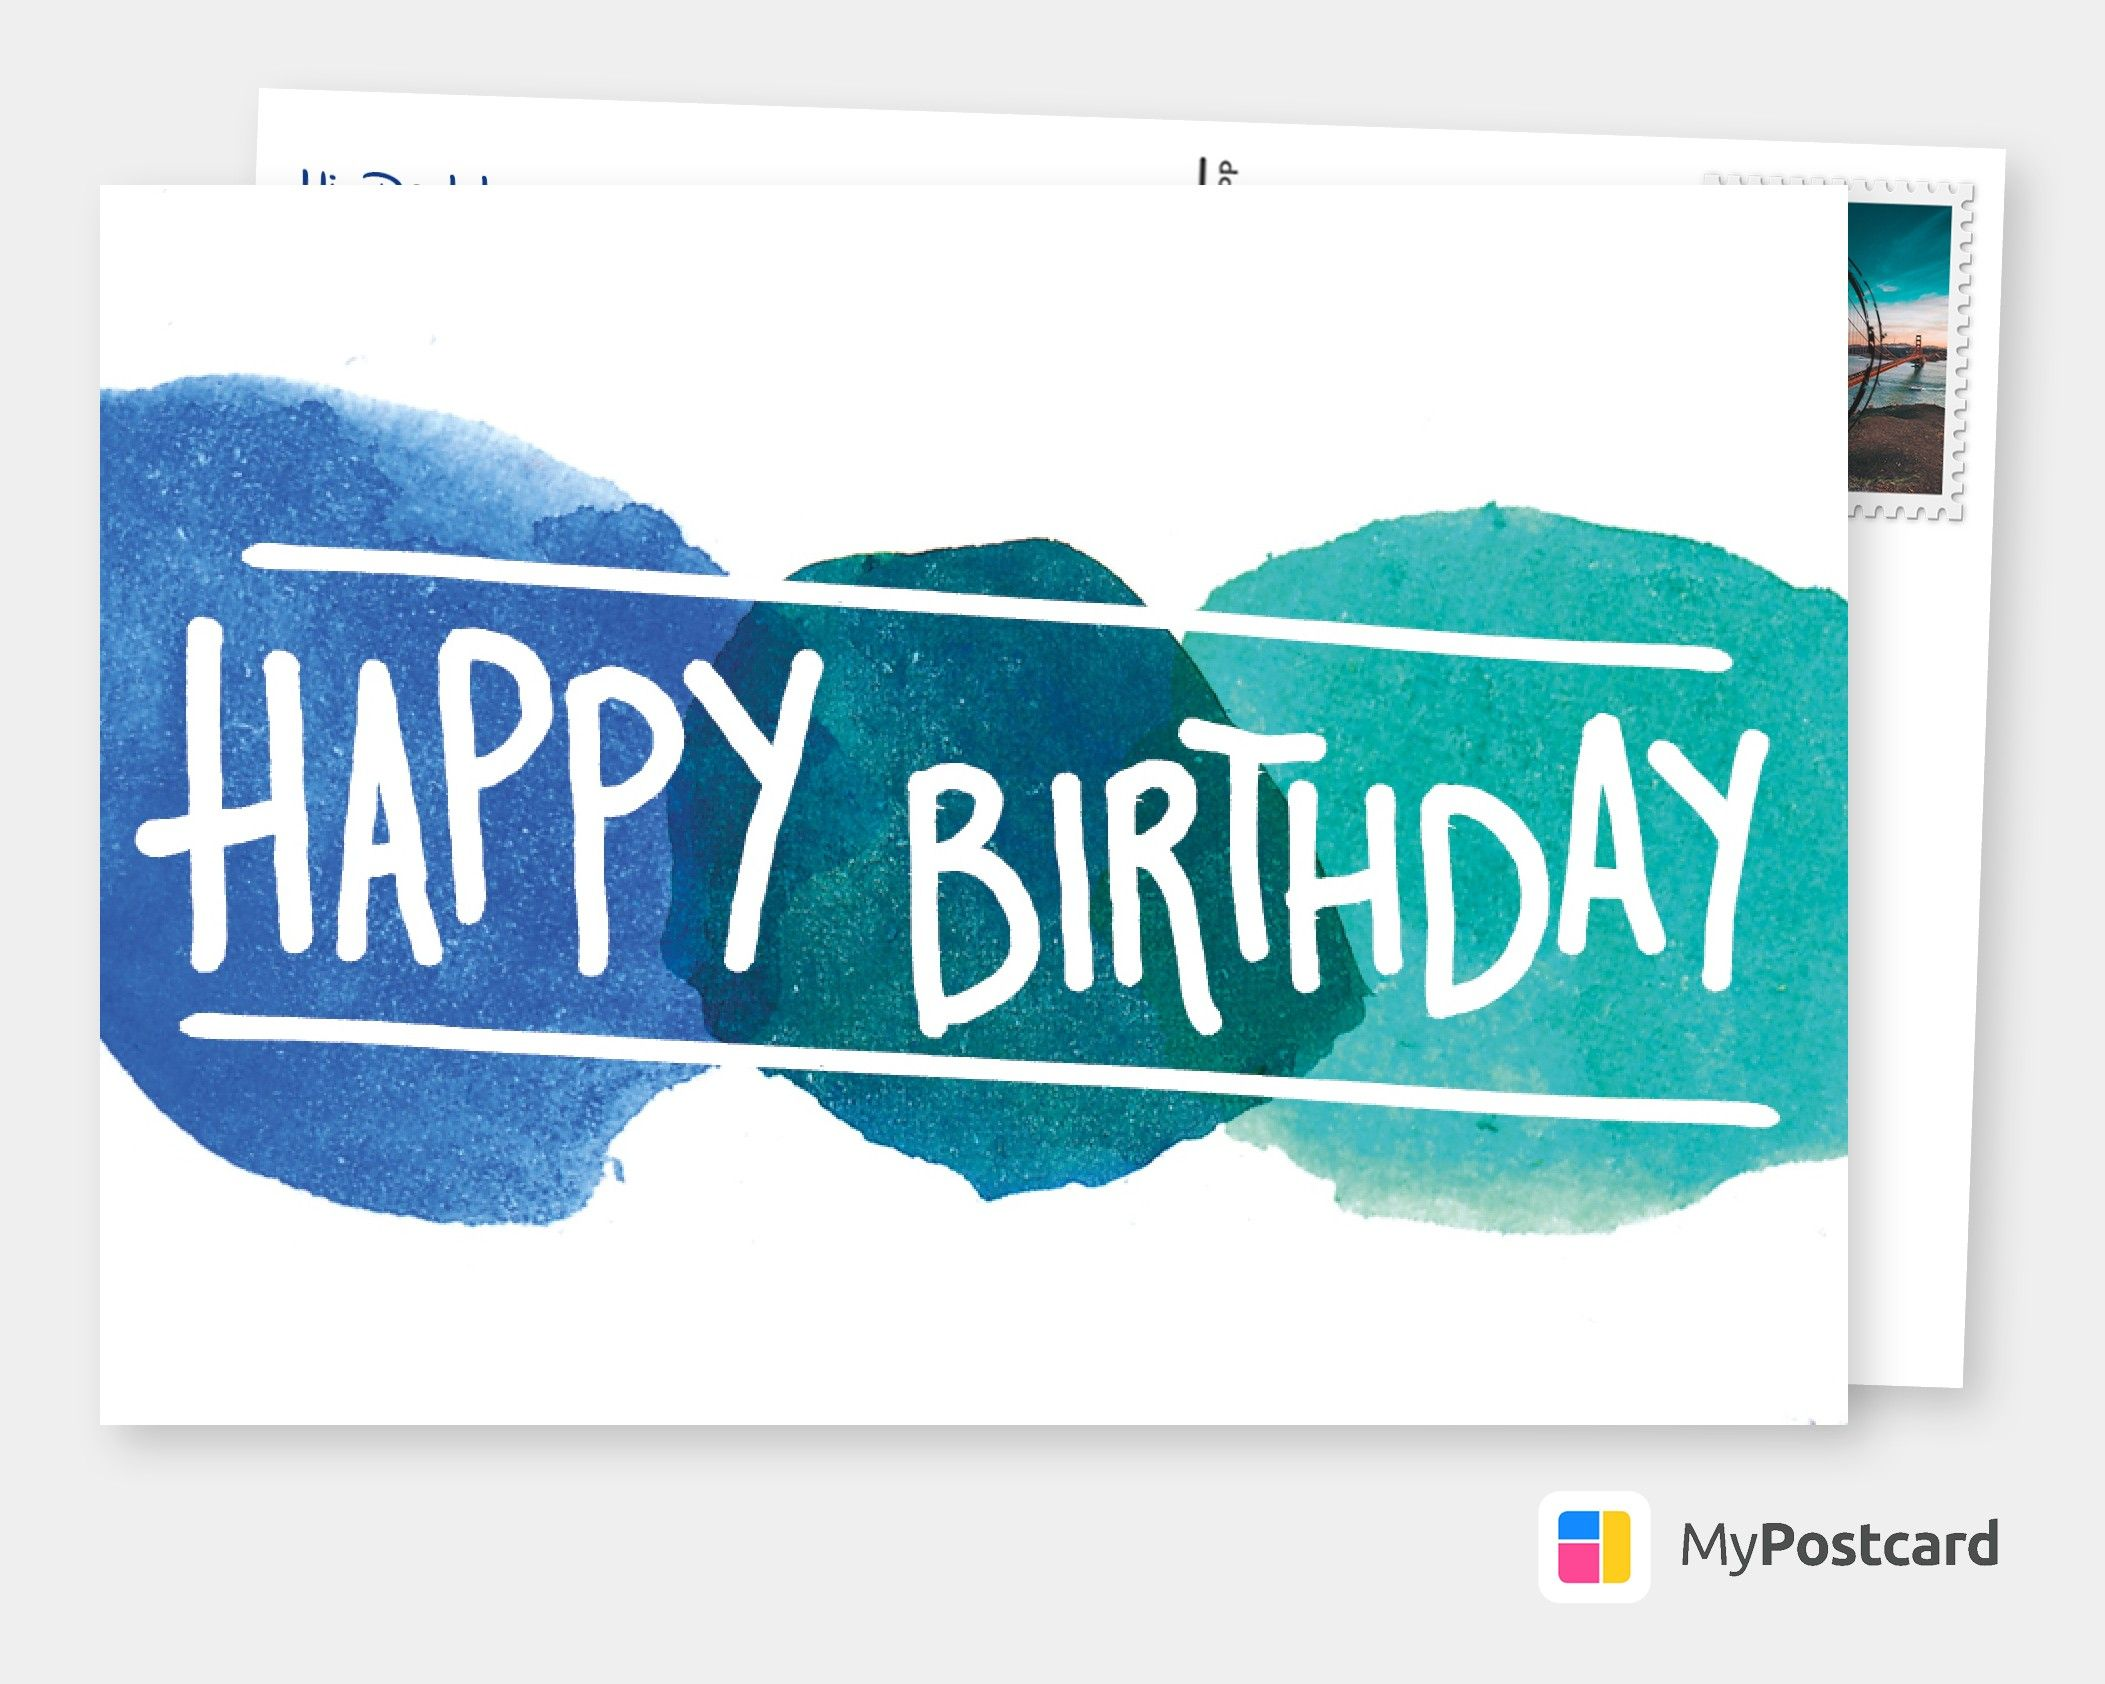 Create Your Own Happy Birthday Cards Free Printable Templates Printed Mailed For You Photo Cards Photo Postcards Greeting Cards Online Sevice Postc Happy Birthday Cards Dad